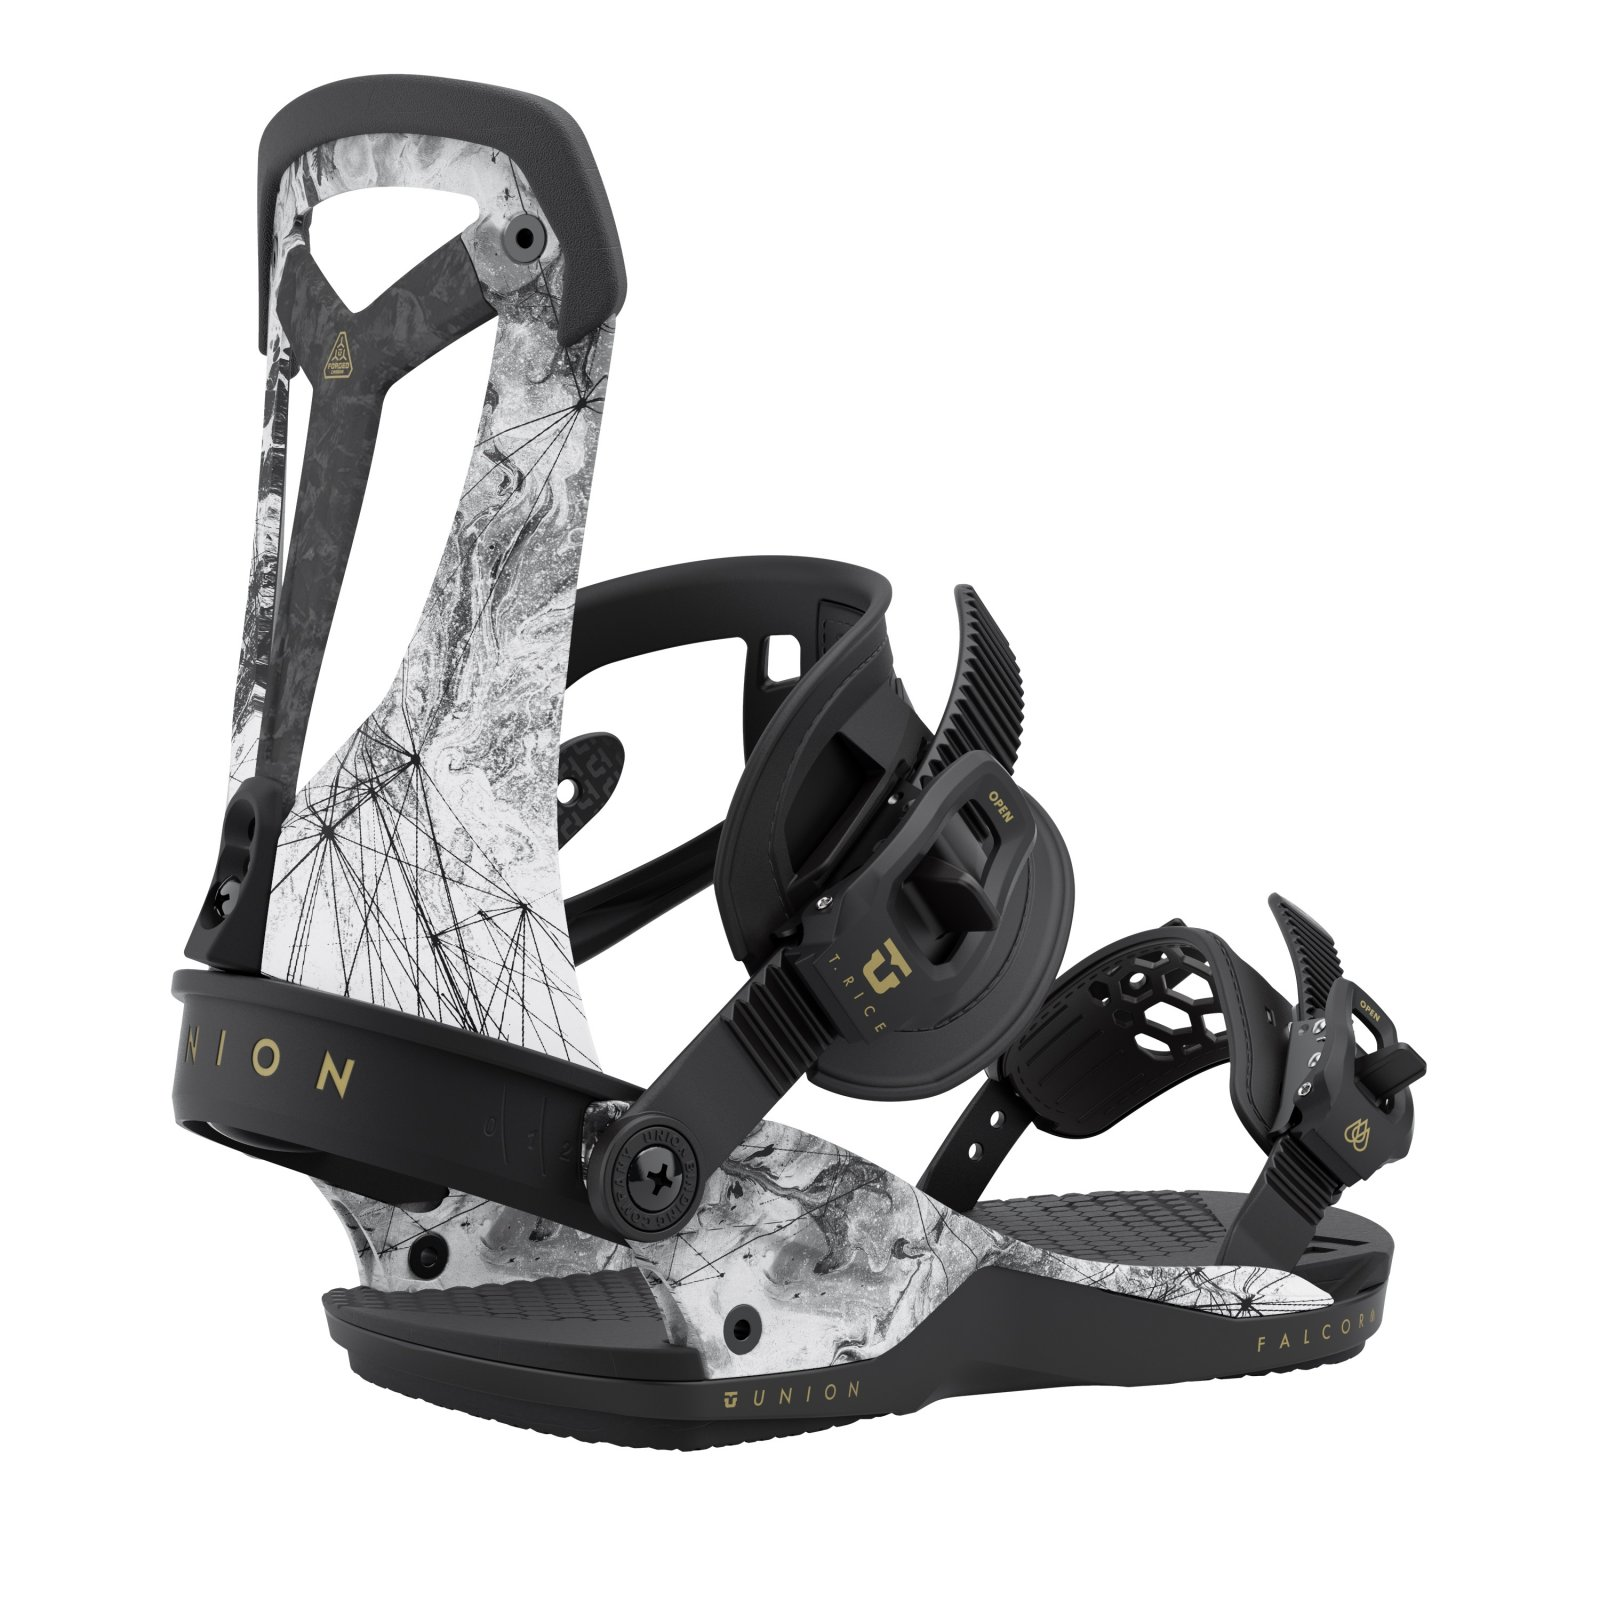 Union Falcor Snowboard Bindings 2021